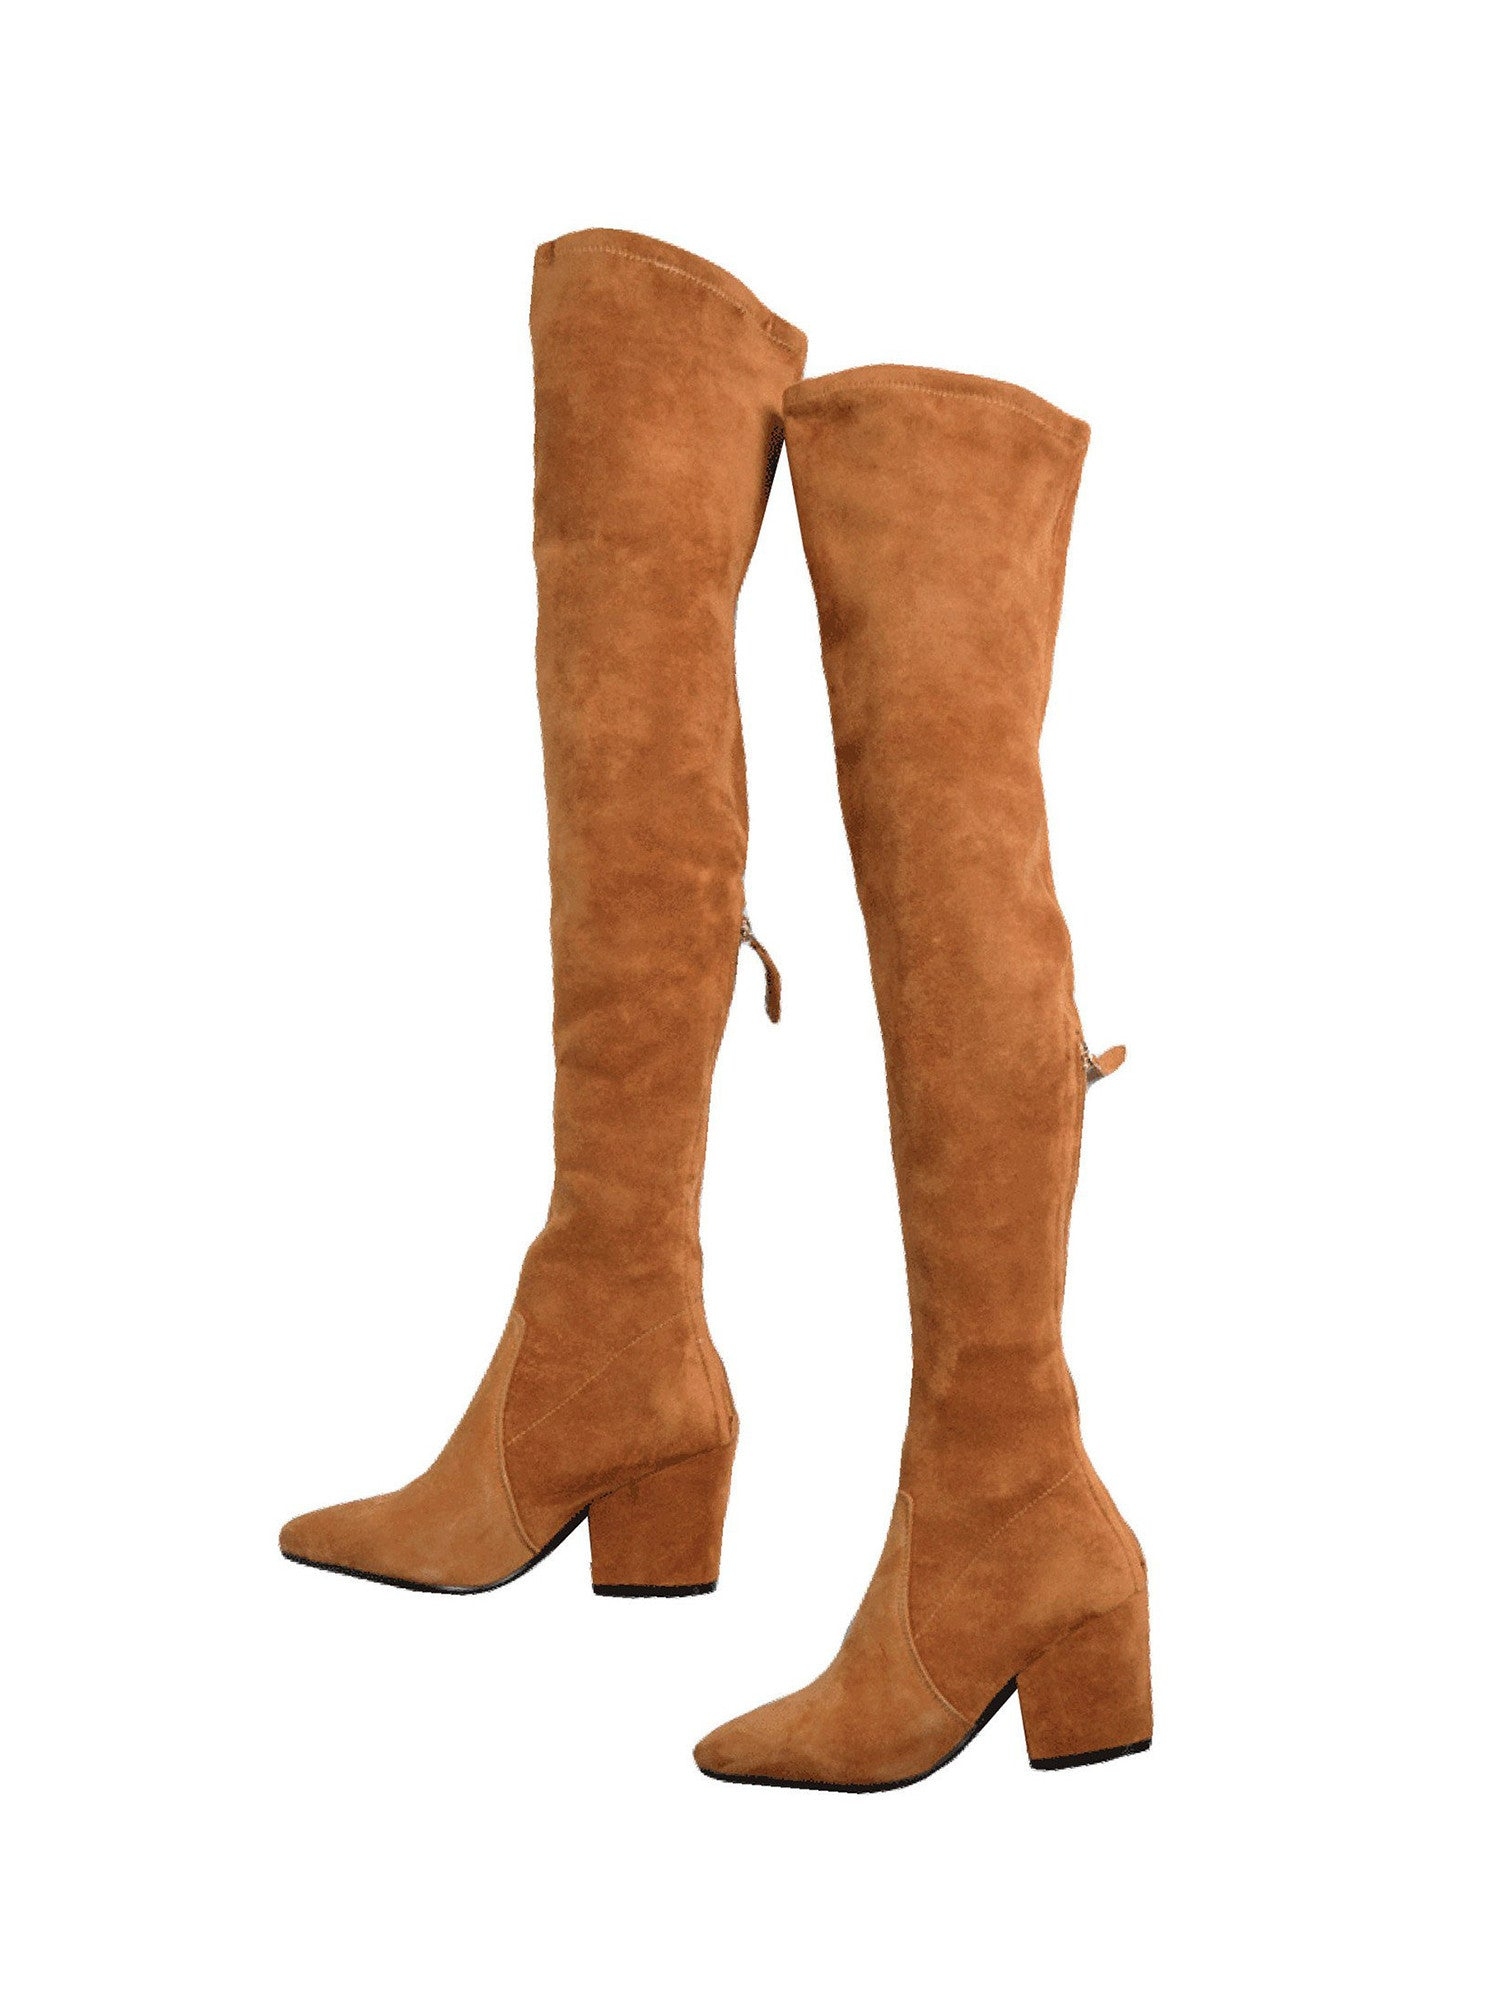 482c2aee93b 'Marlo' Tan Over The Knee Suede Leather Boots - Goodnight Macaroon